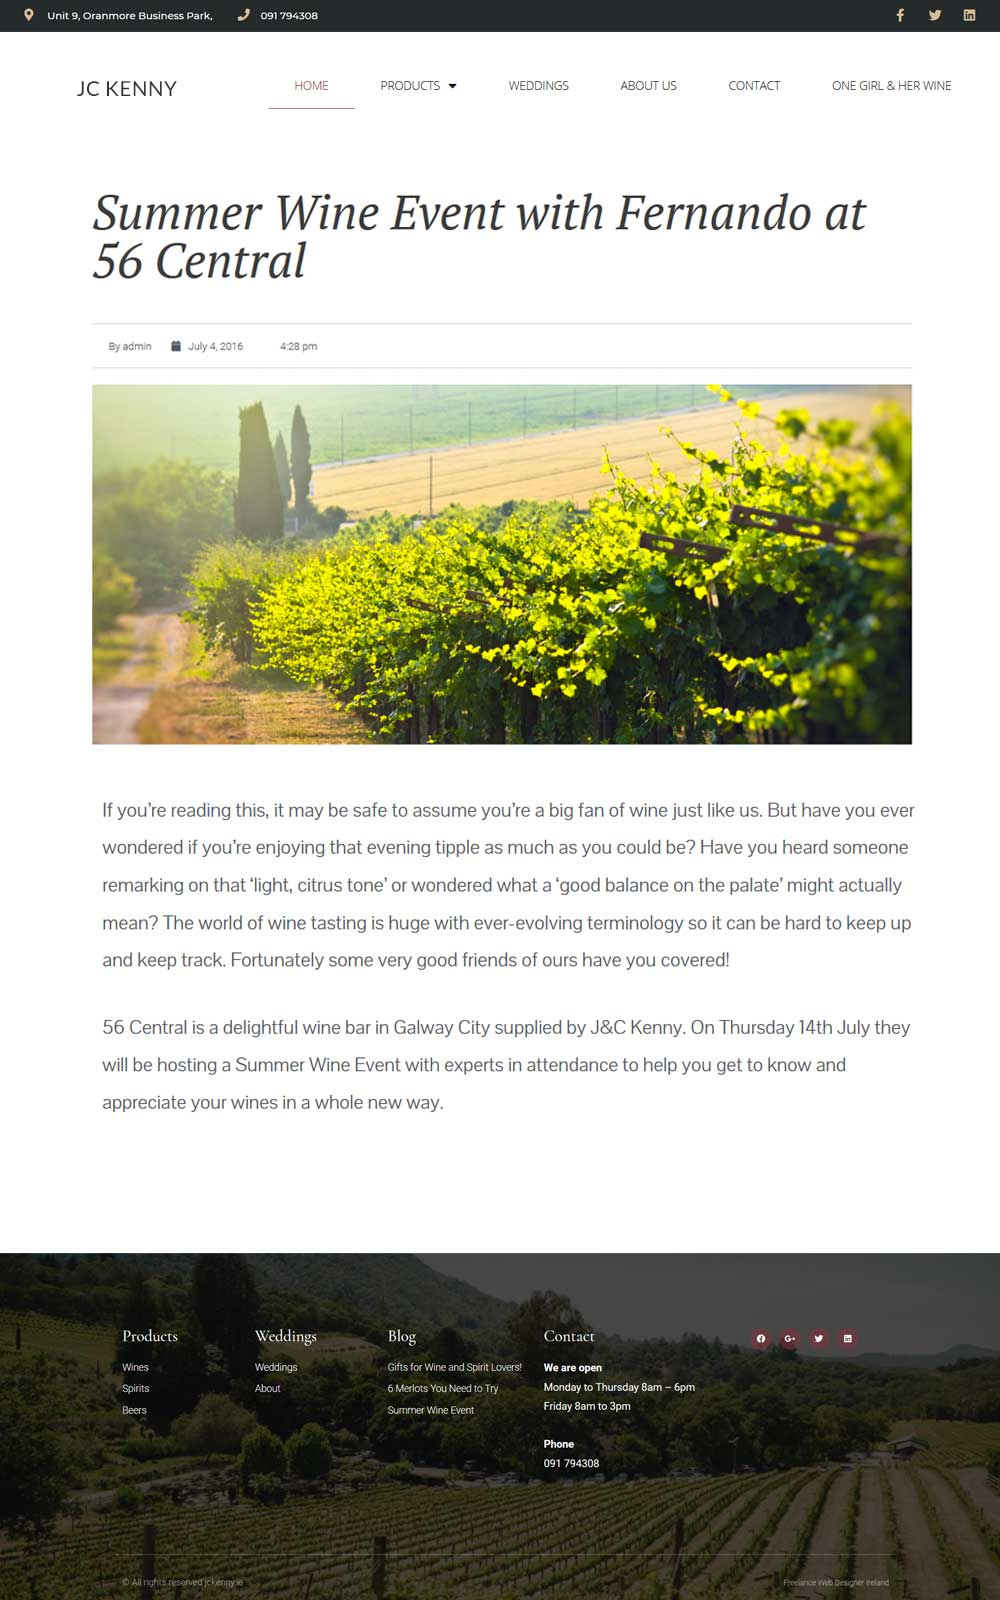 We created a minimal blog page layout